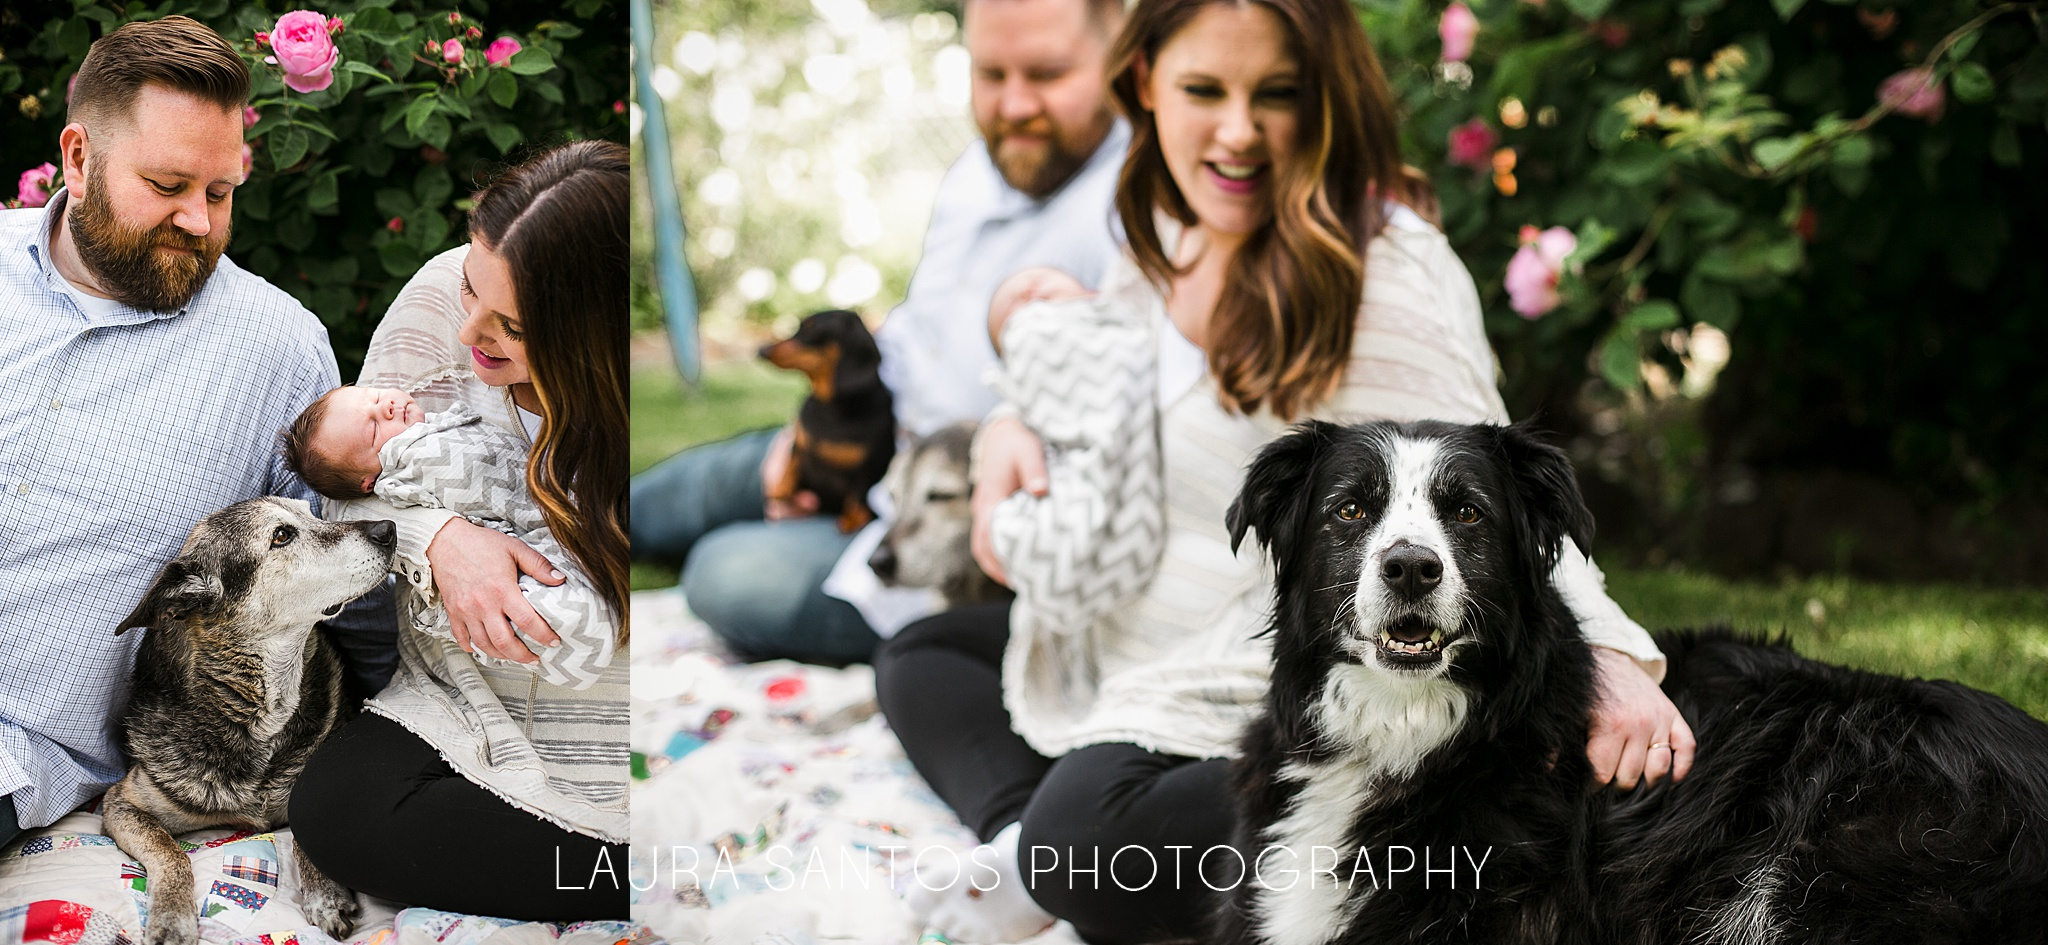 Laura Santos Photography Portland Oregon Family Photographer_0980.jpg